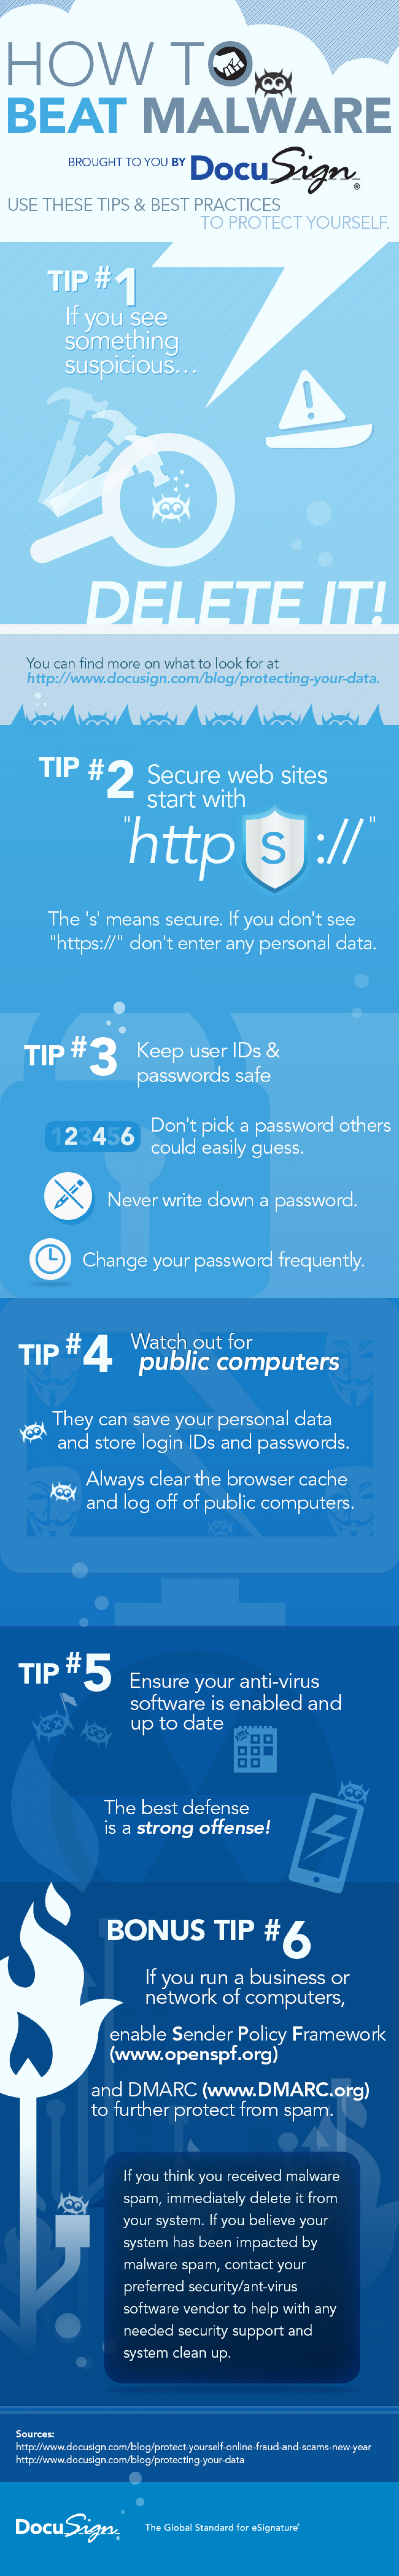 How to beat malware Infographic